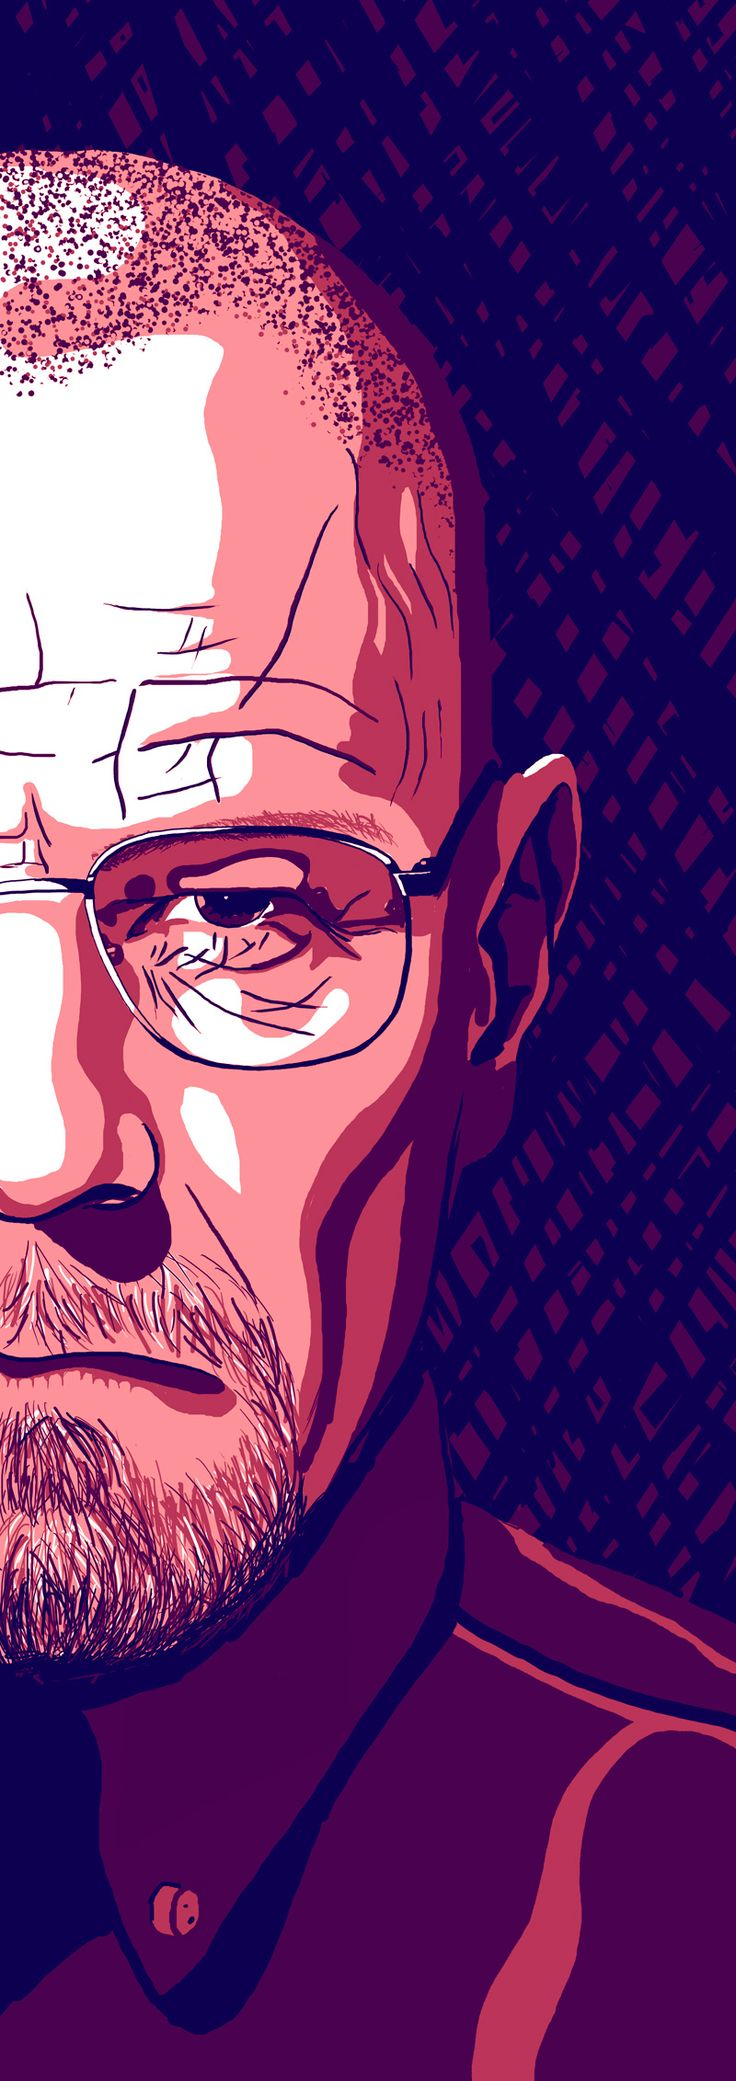 """Breaking Bad - """"The one who knocks"""" 